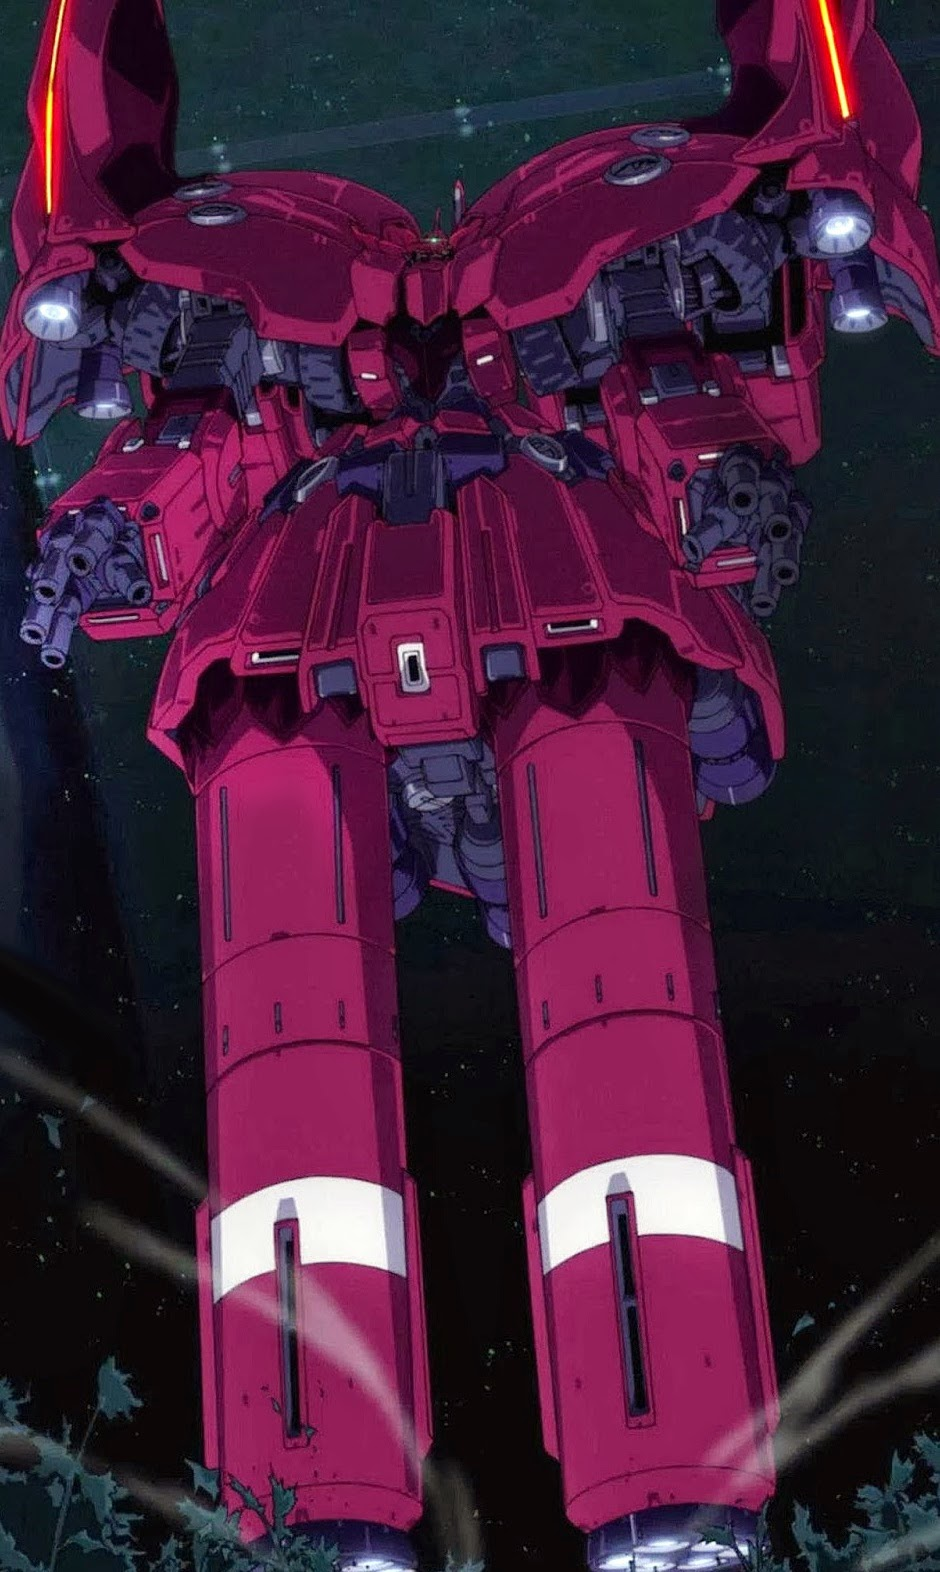 Neo Zeong Wallpaper a Panorama Image Produced by